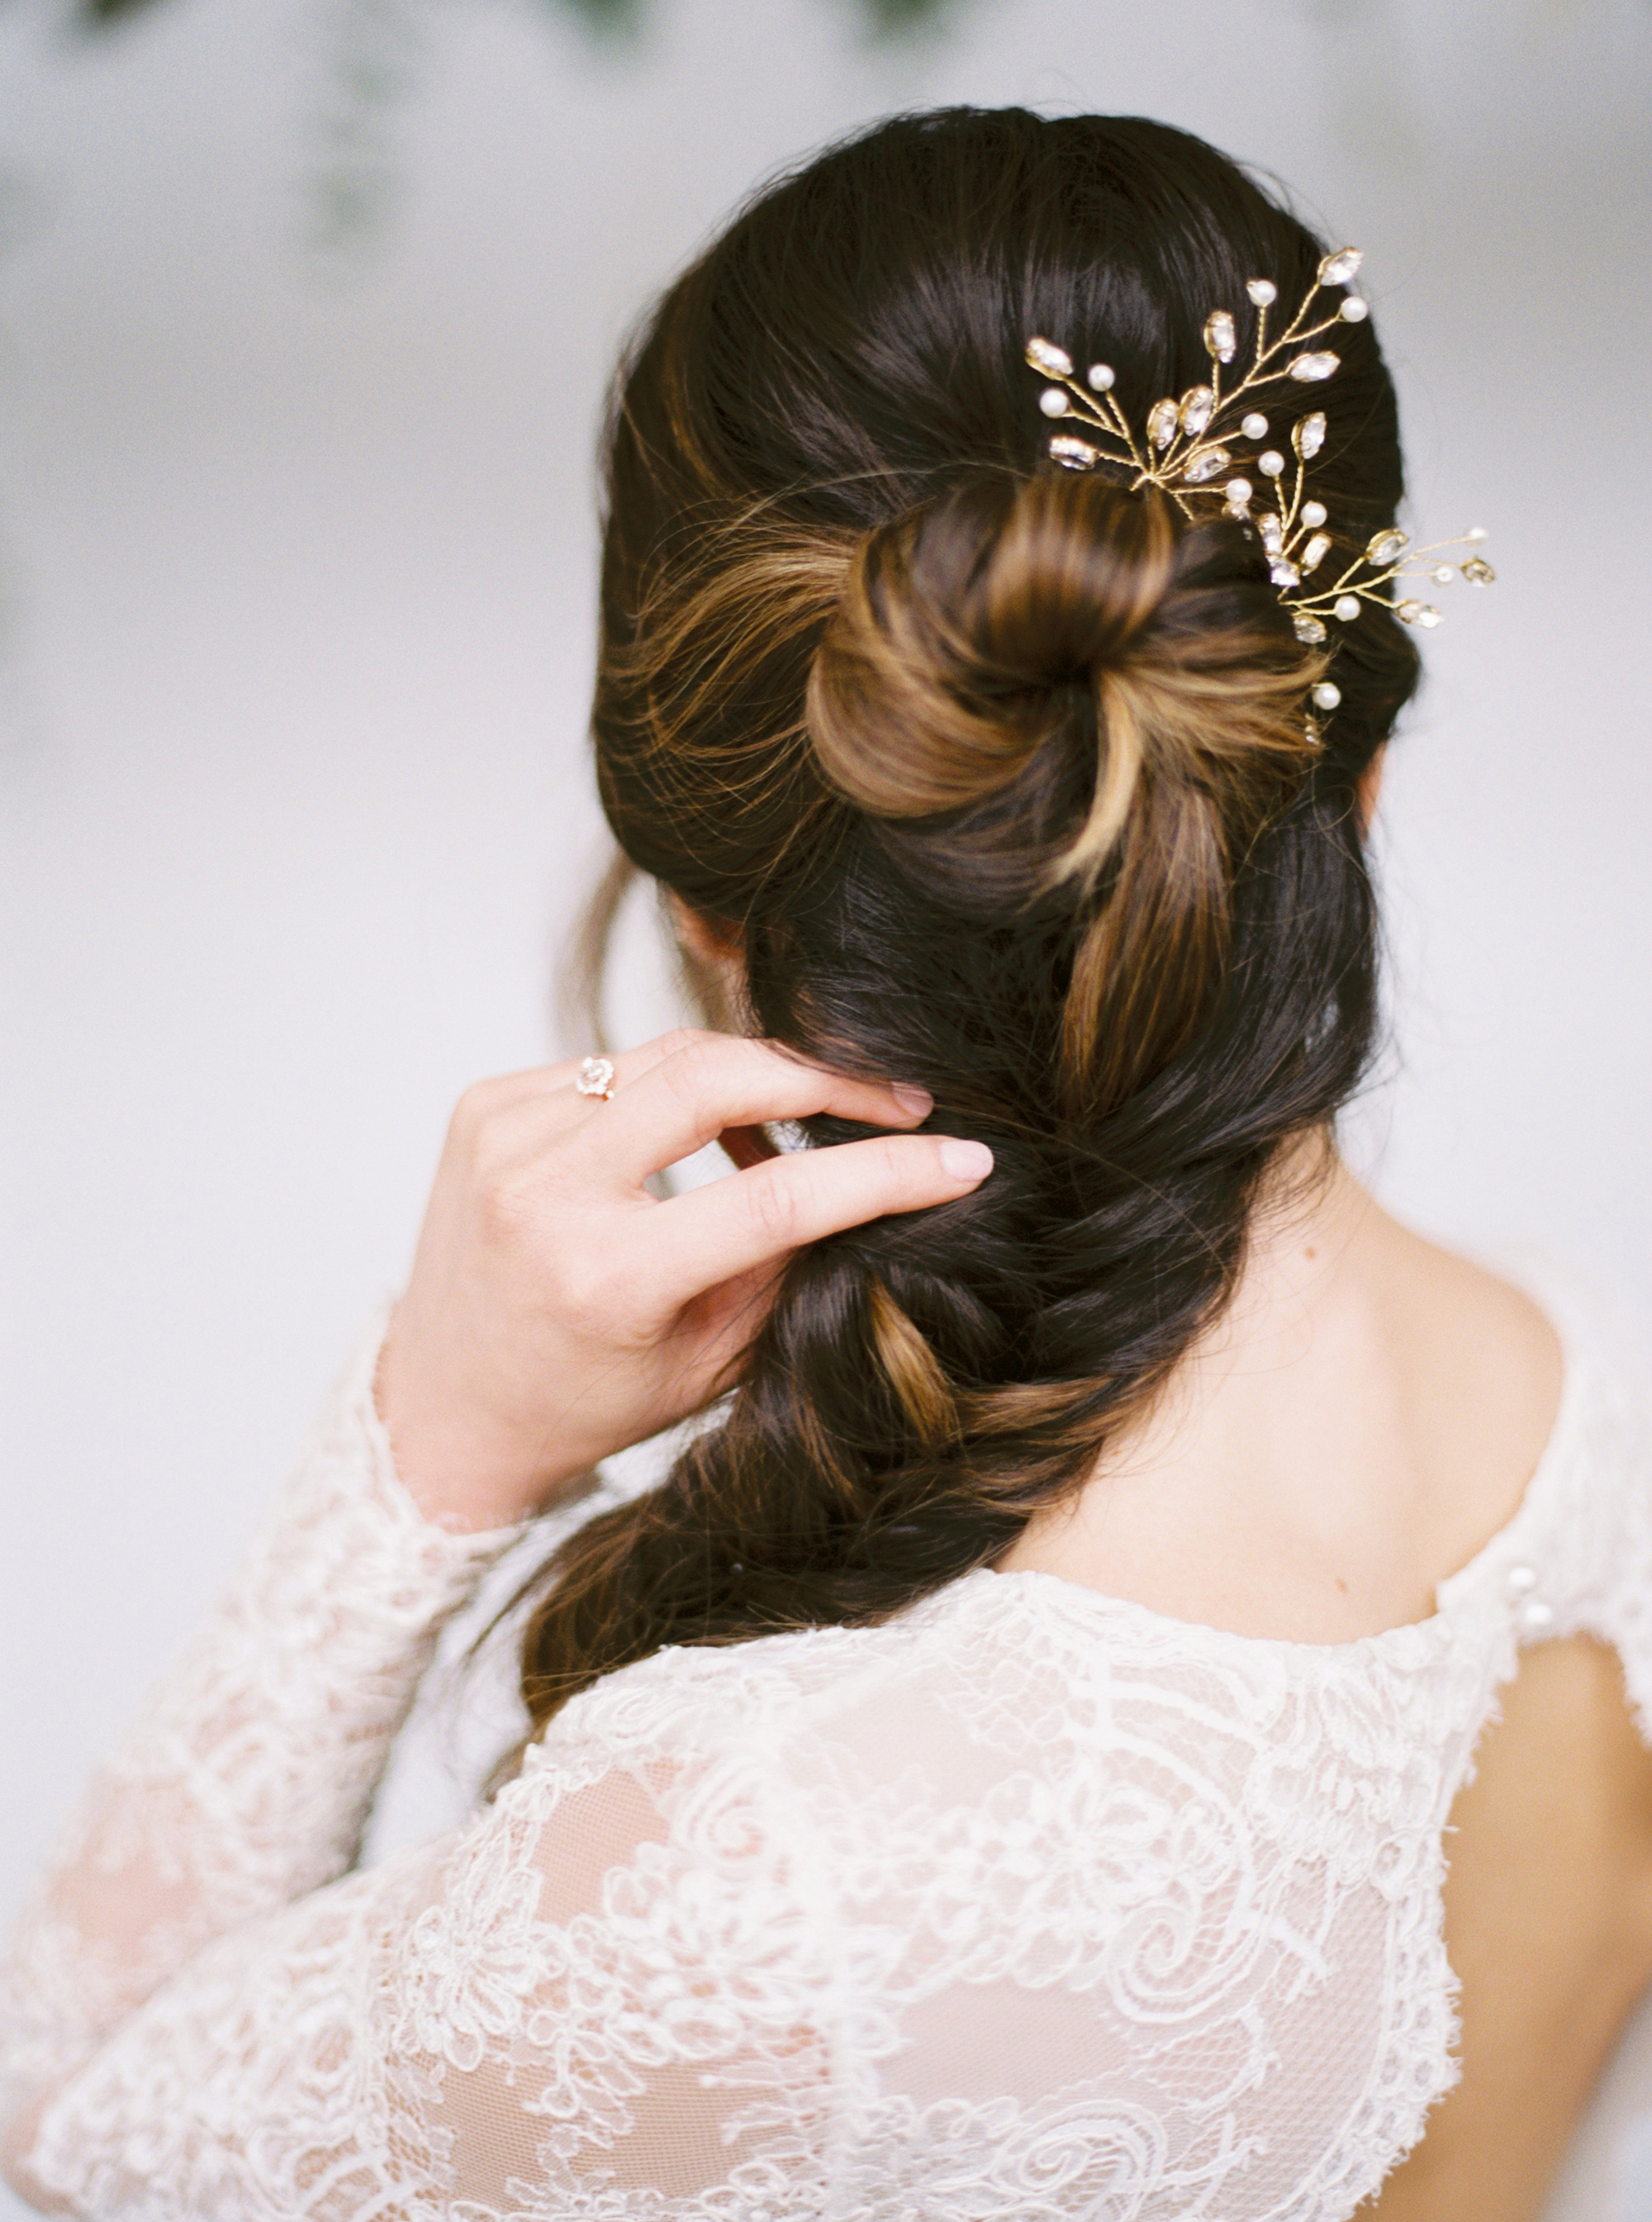 Seven Dos and Don'ts of Wearing a Hair Accessory on Your Wedding Day